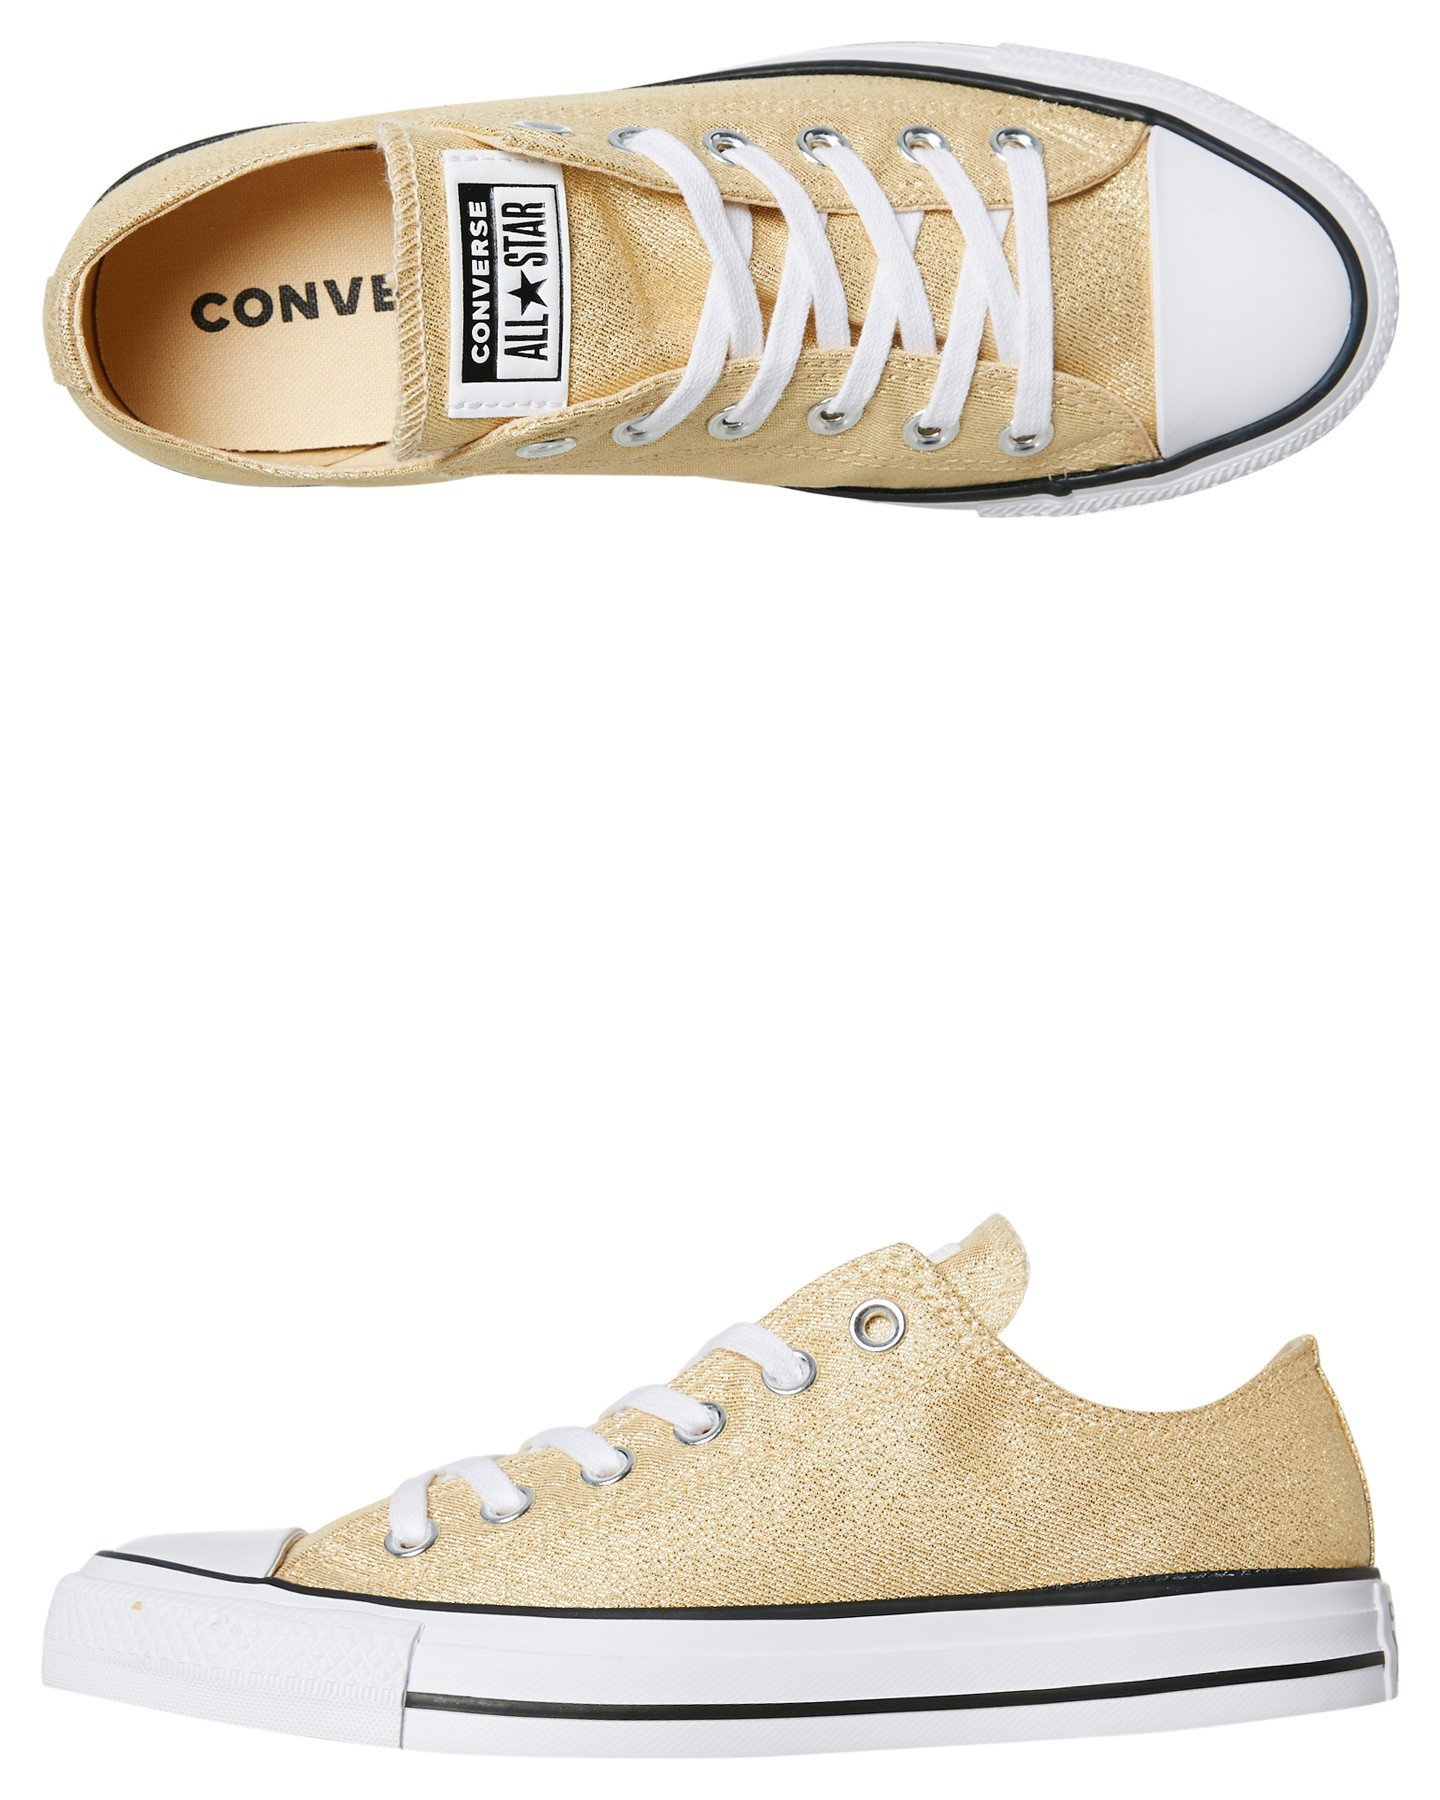 Chuck Taylor All Star Shoe Metallic Twine By CONVERSE